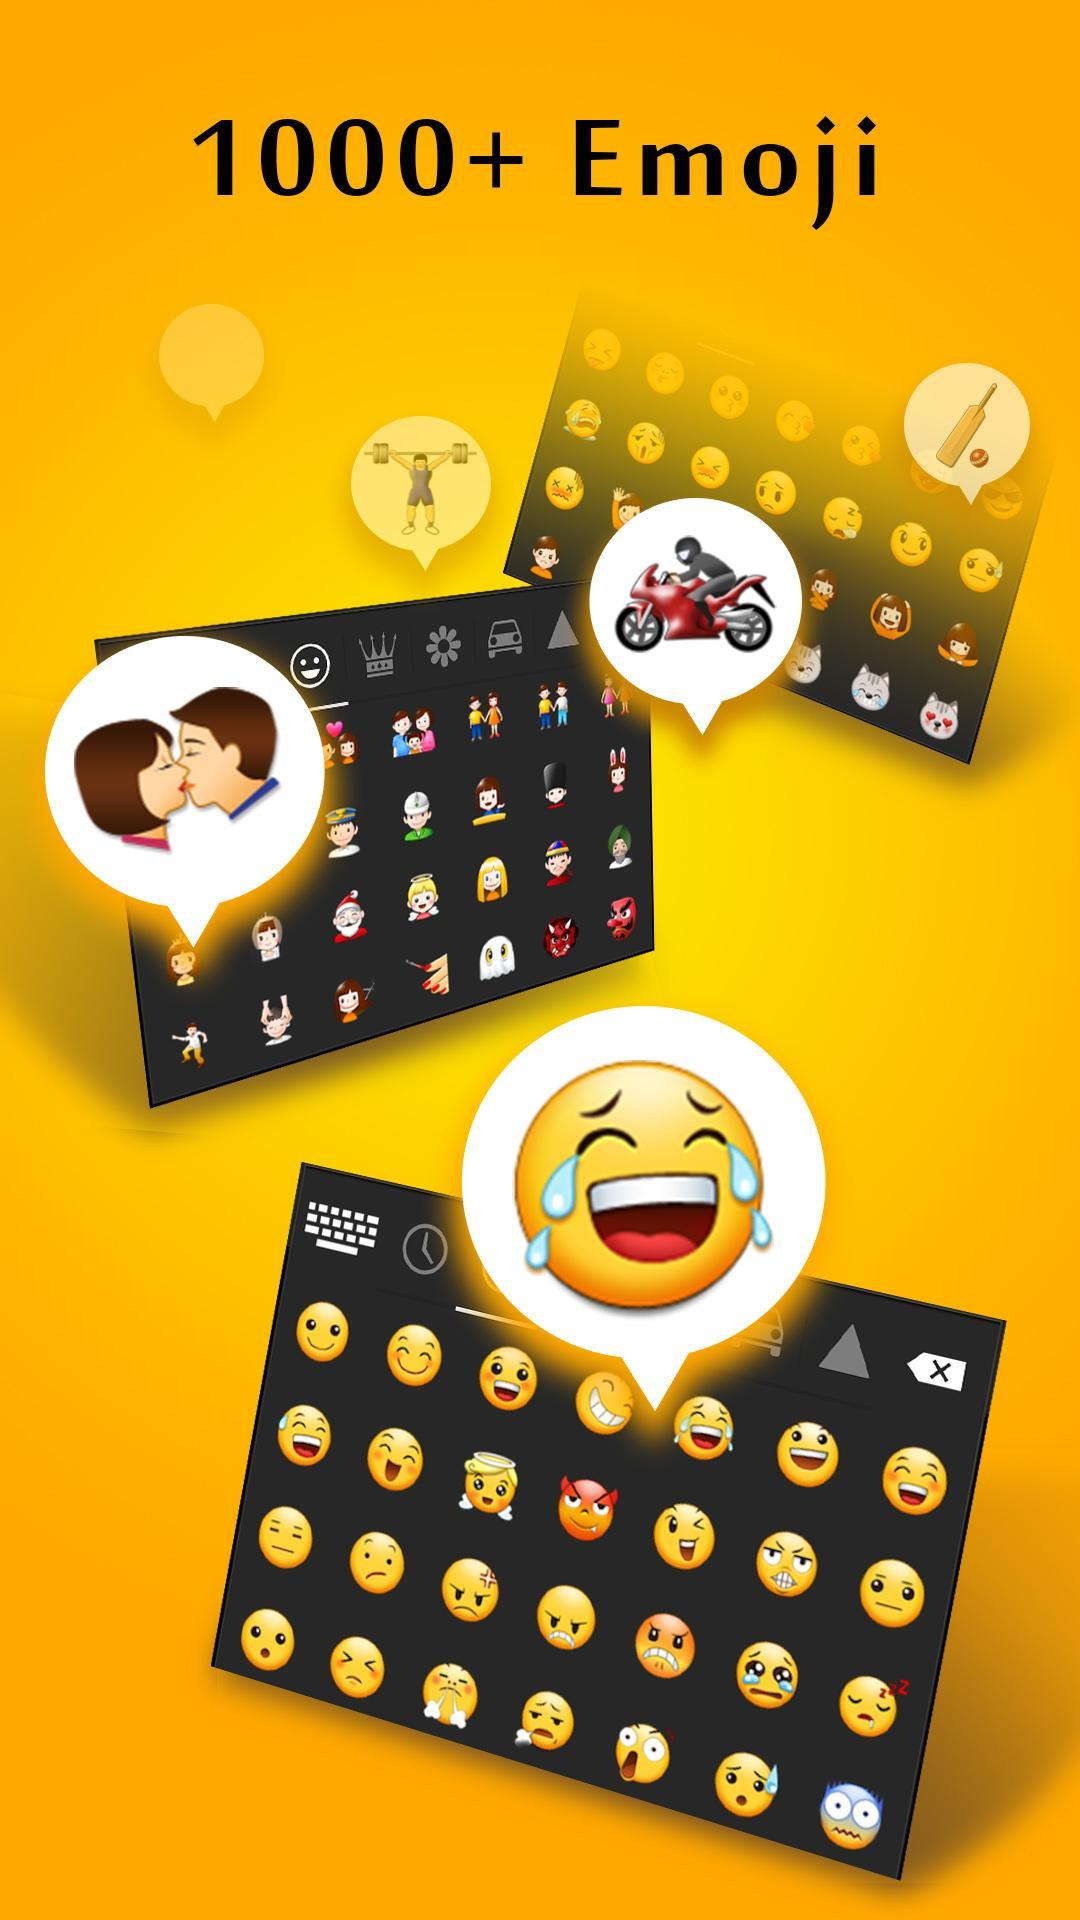 Galaxy Emoji for Android - APK Download